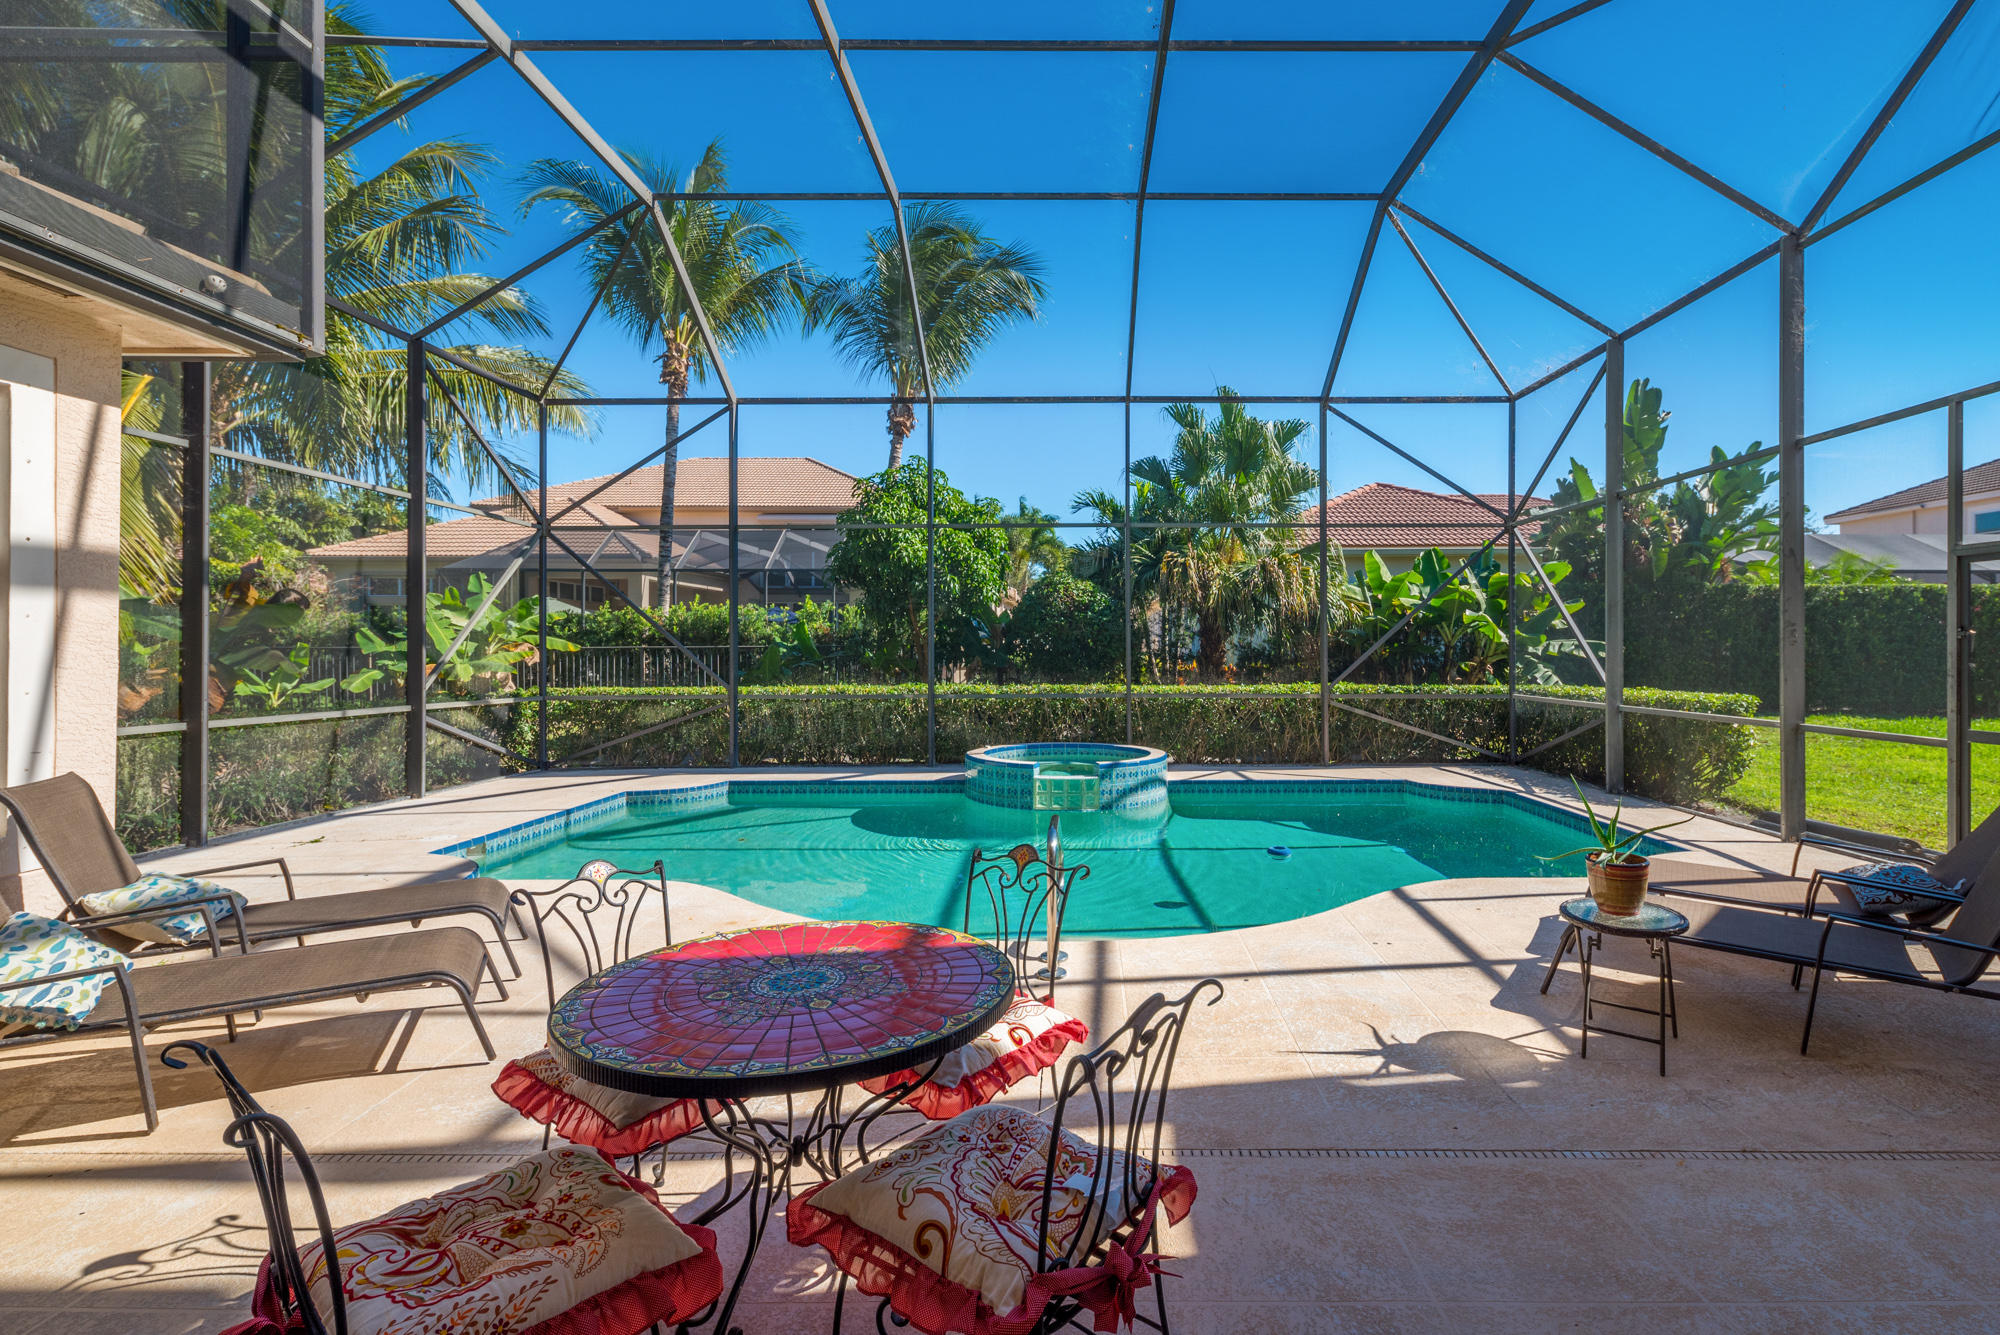 MYSTIC COVE HOMES FOR SALE